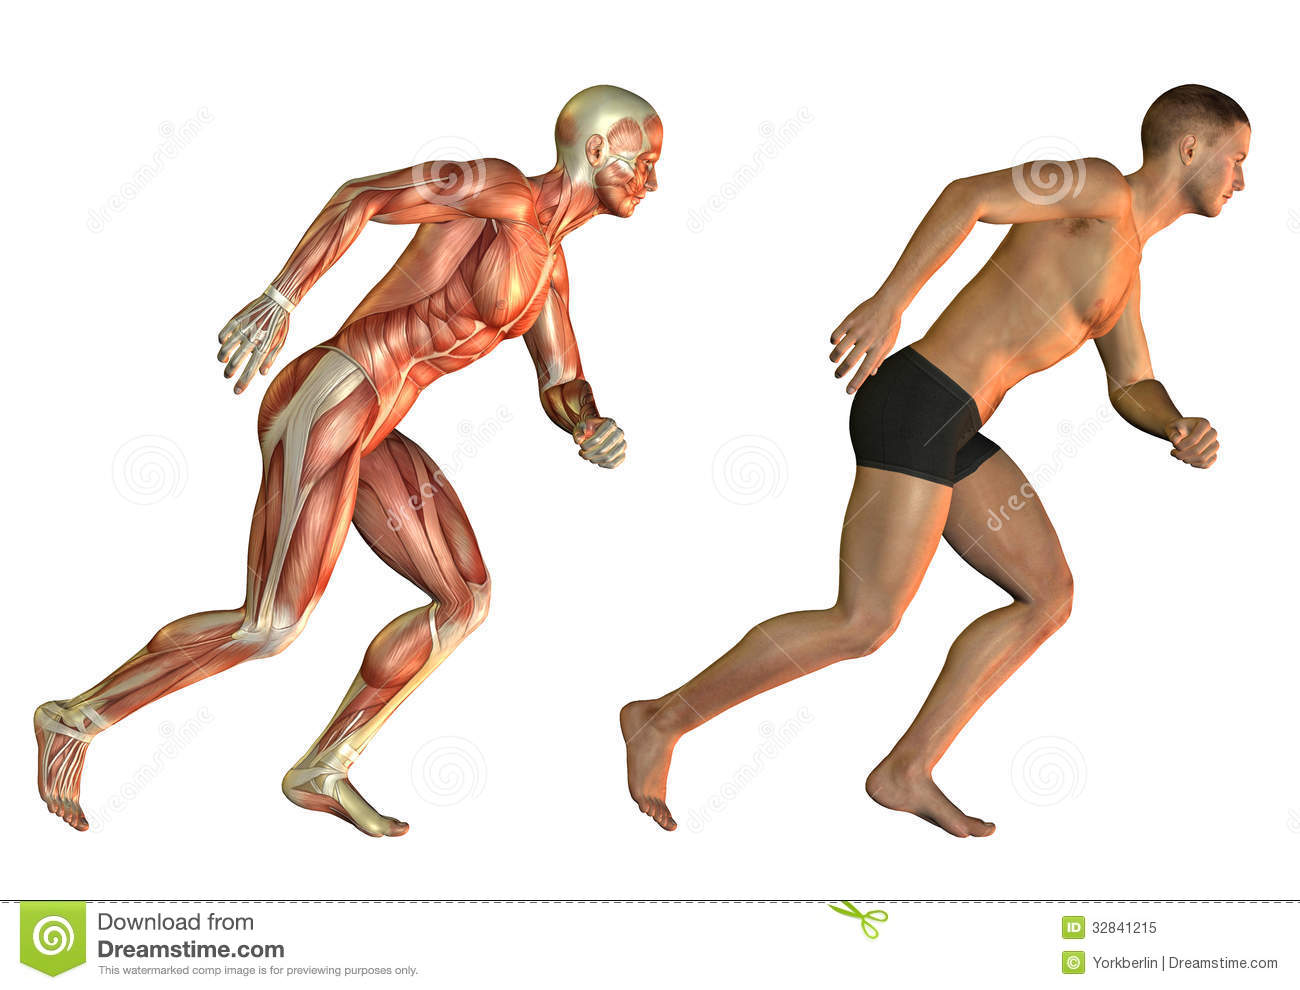 Running man anatomy study stock illustration. Illustration of legs ...